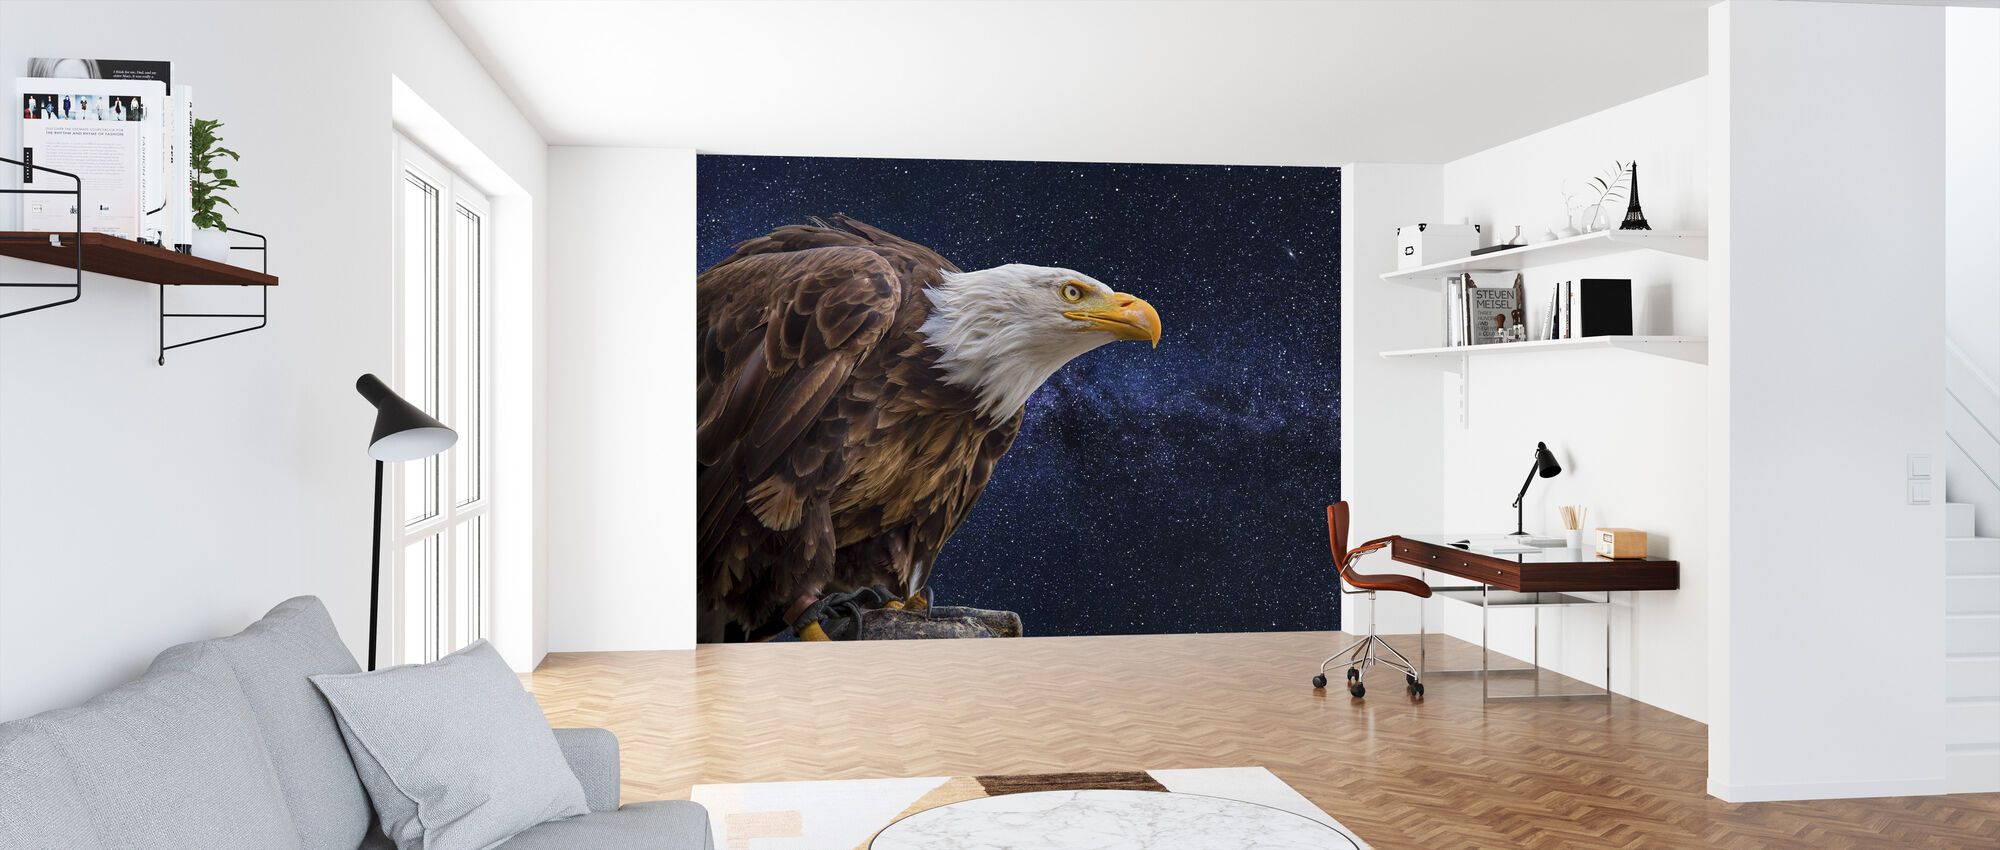 The Bald Eagle - Wallpaper - Office